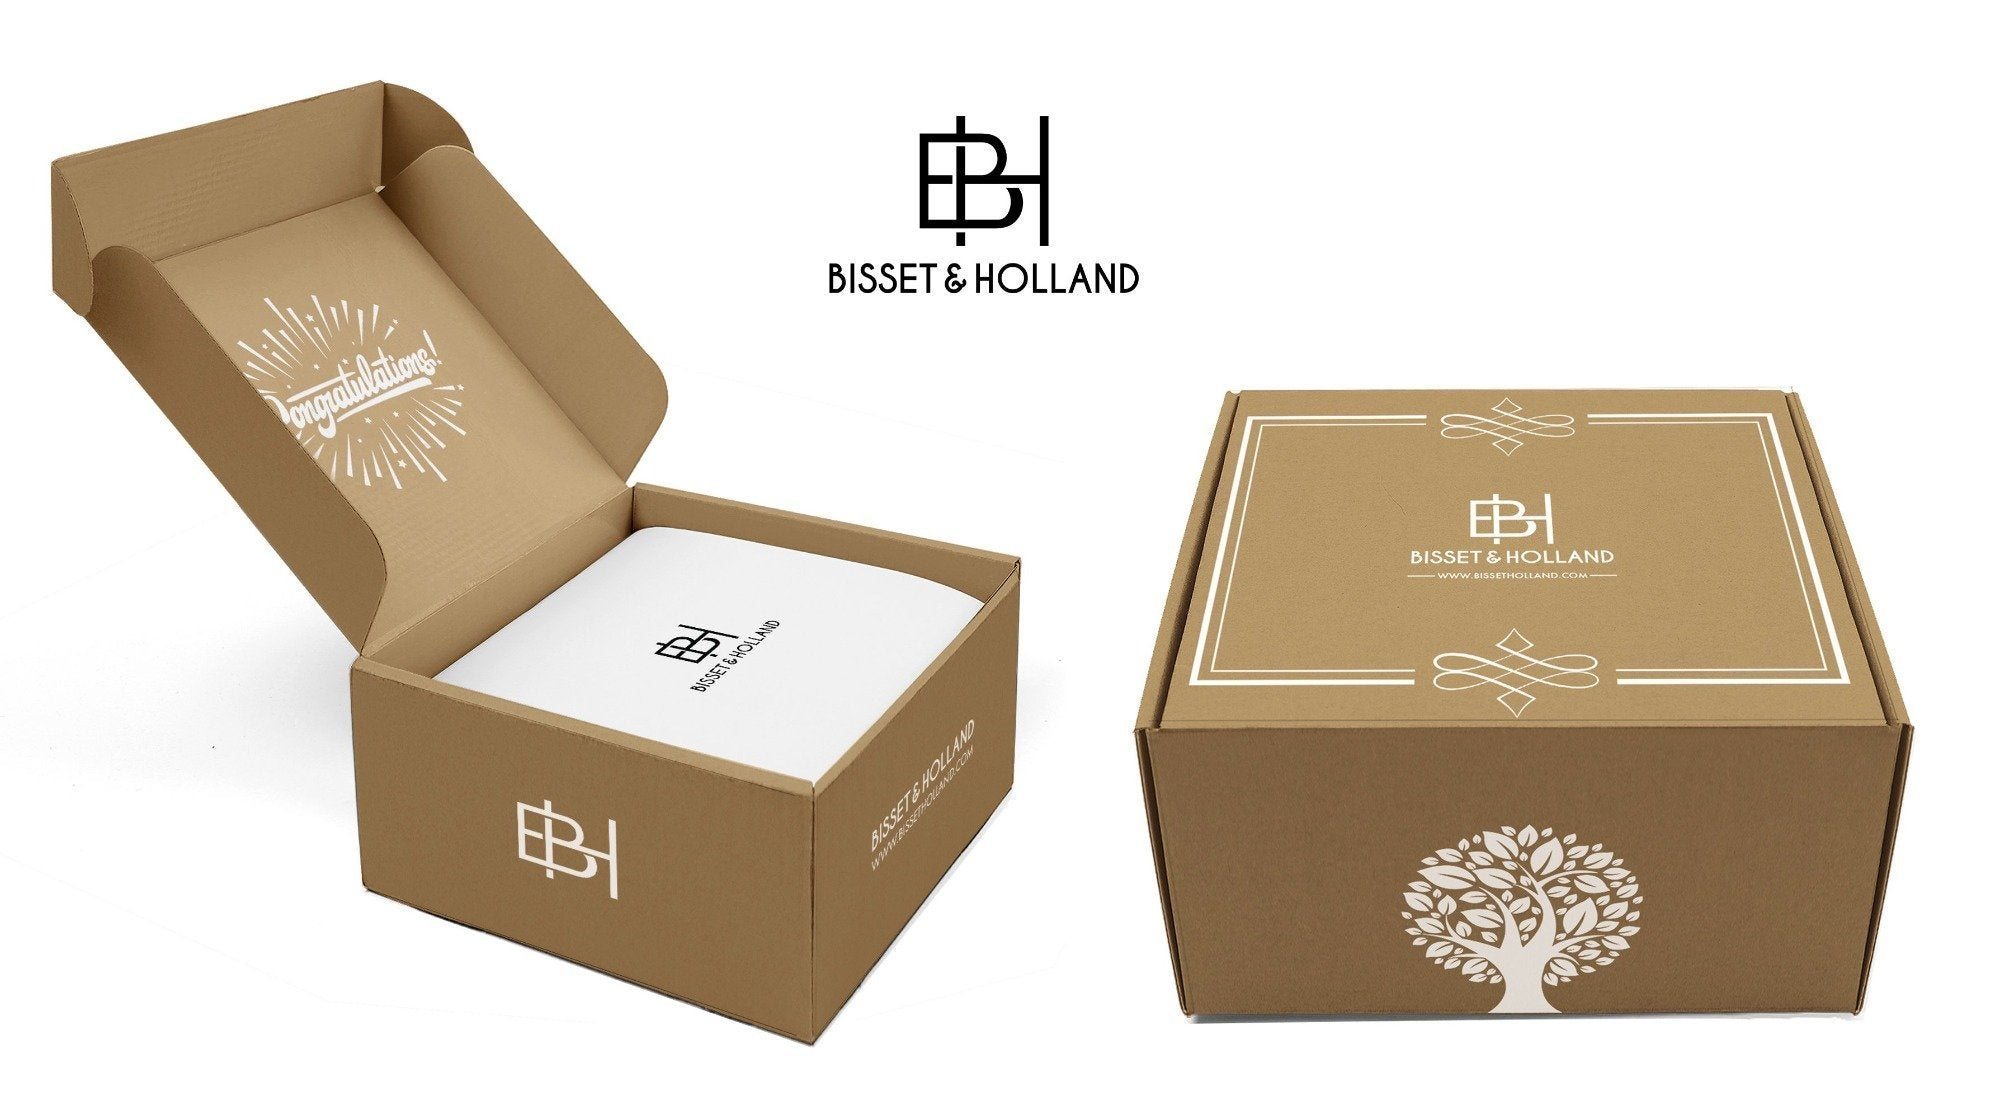 LUXURY-GIFT-box-bisset-holland